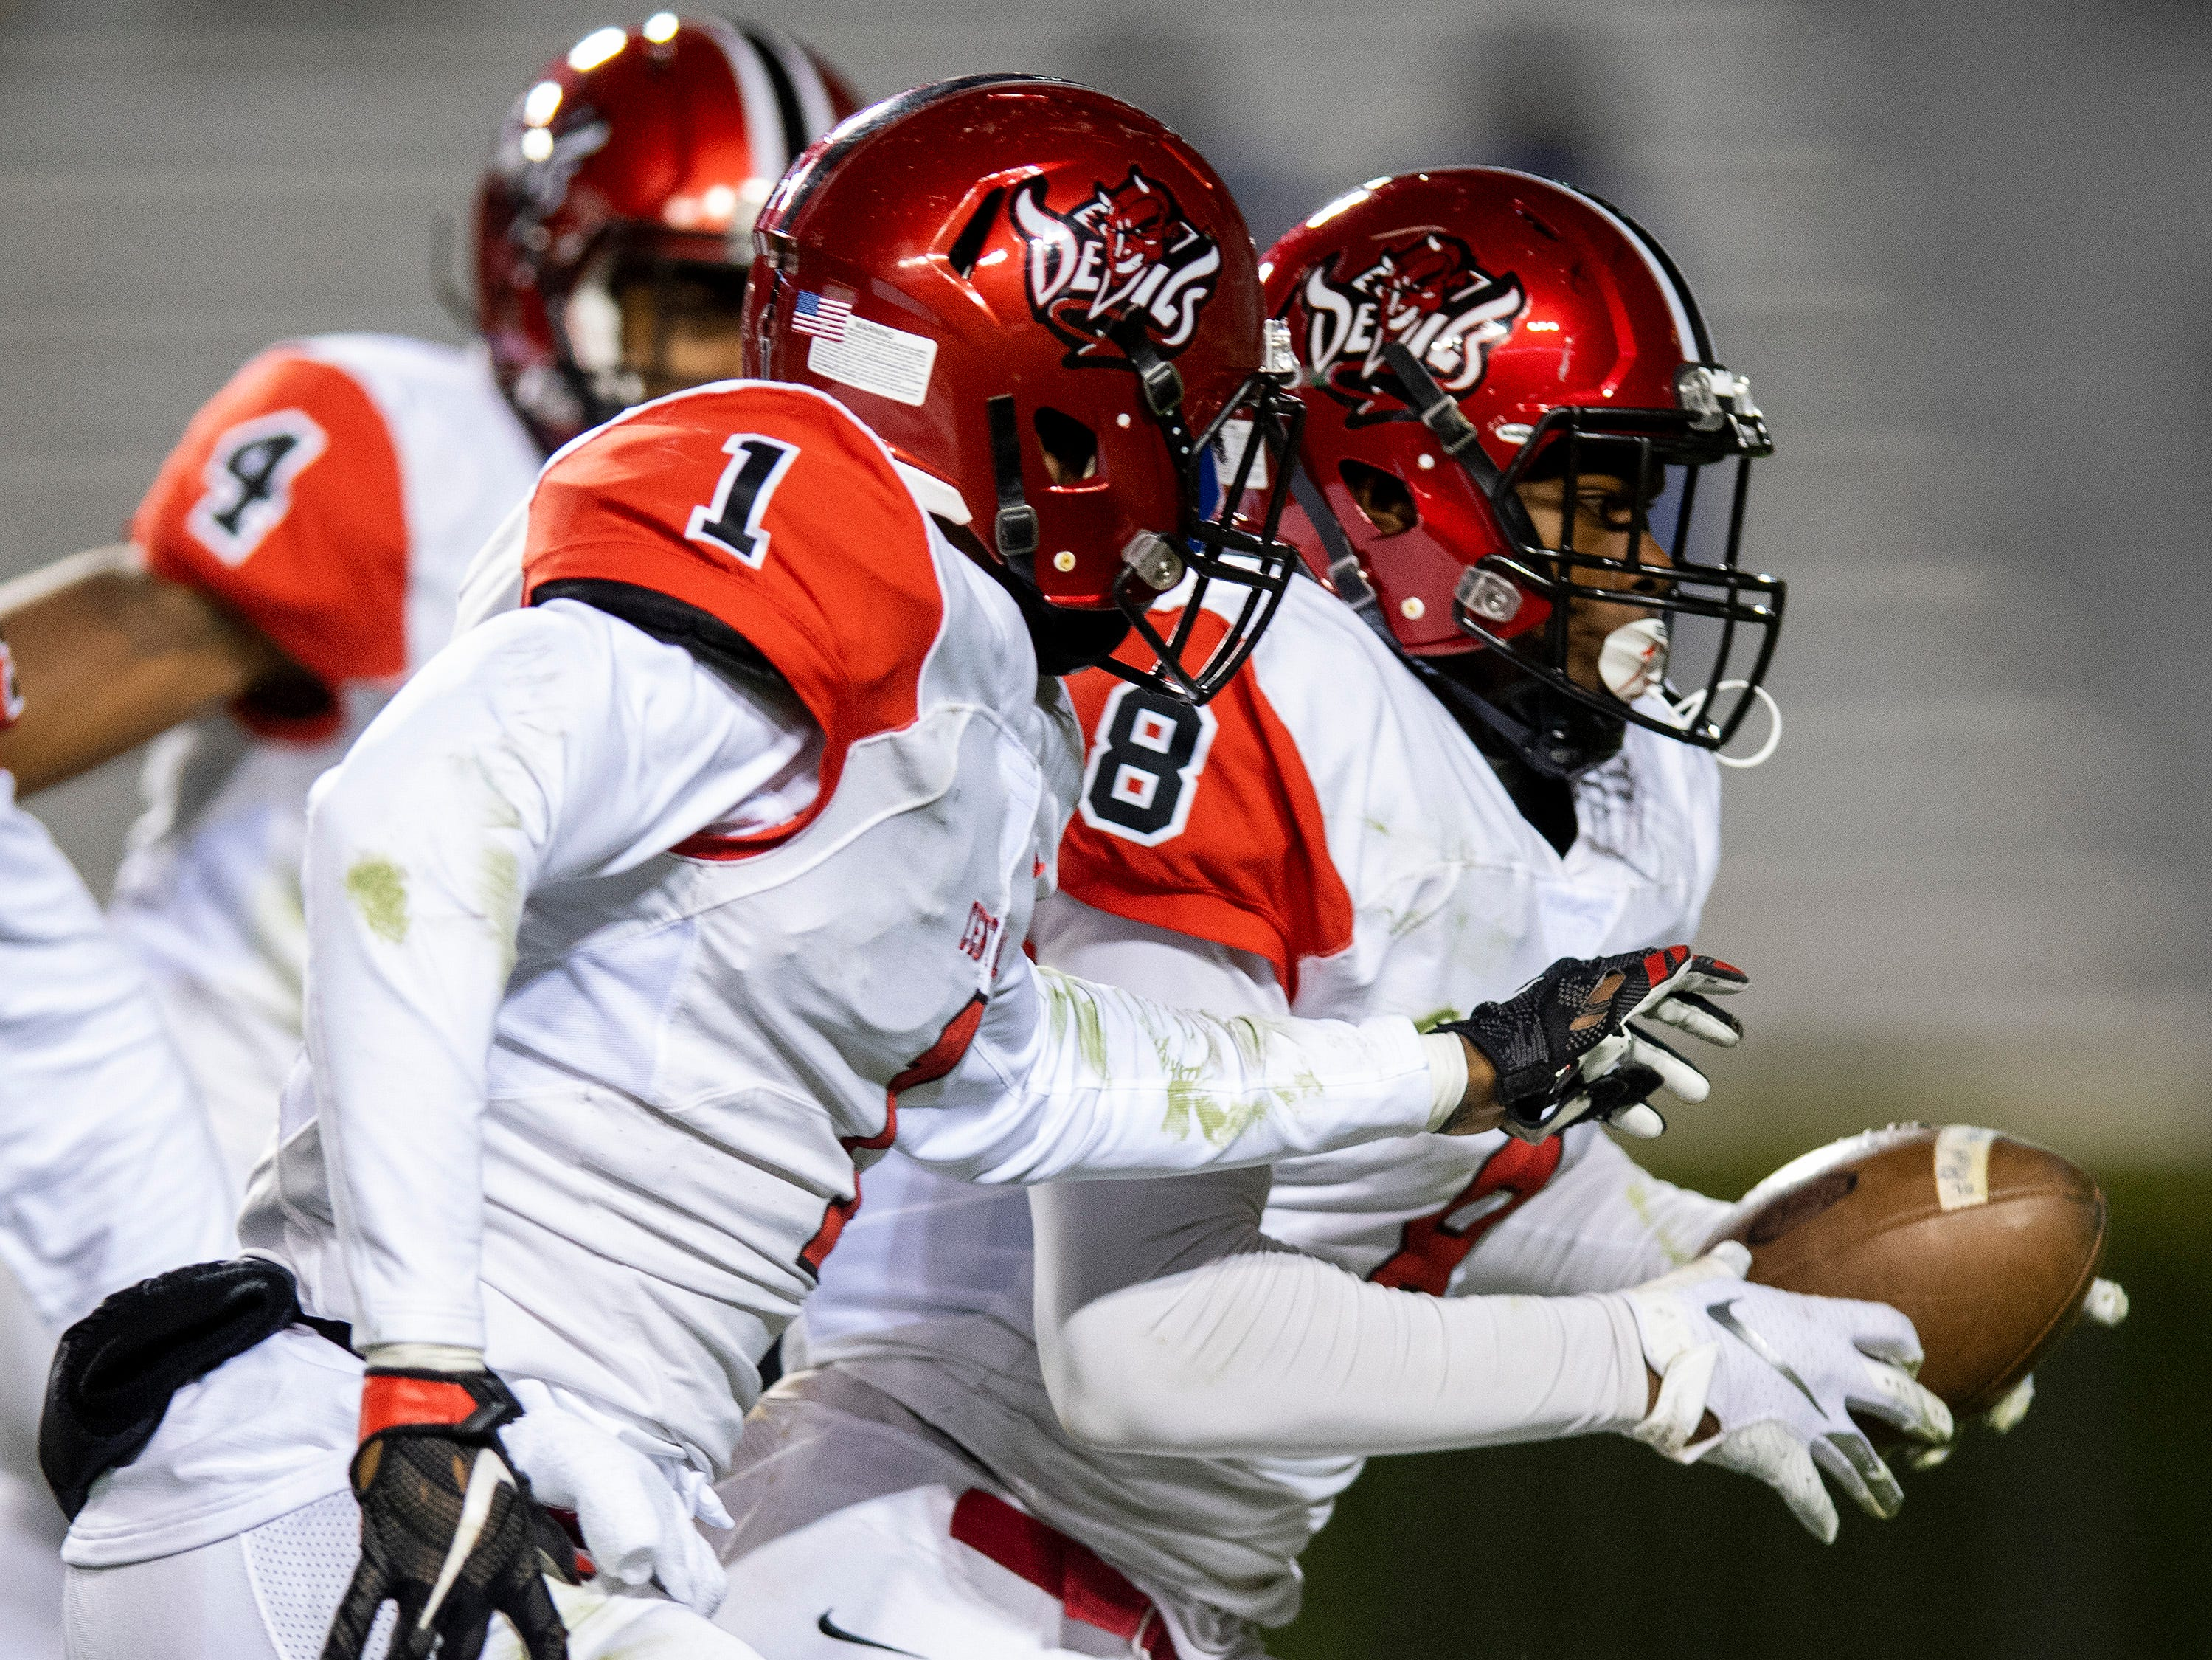 Central-Phenix City's Trevon Miller scores a touchdown on a fumble recovery against Thompson during the AHSAA Class 7A State Championship Football Game at Jordan Hare Stadium in Auburn, Ala., on Wednesday evening December 5, 2018.